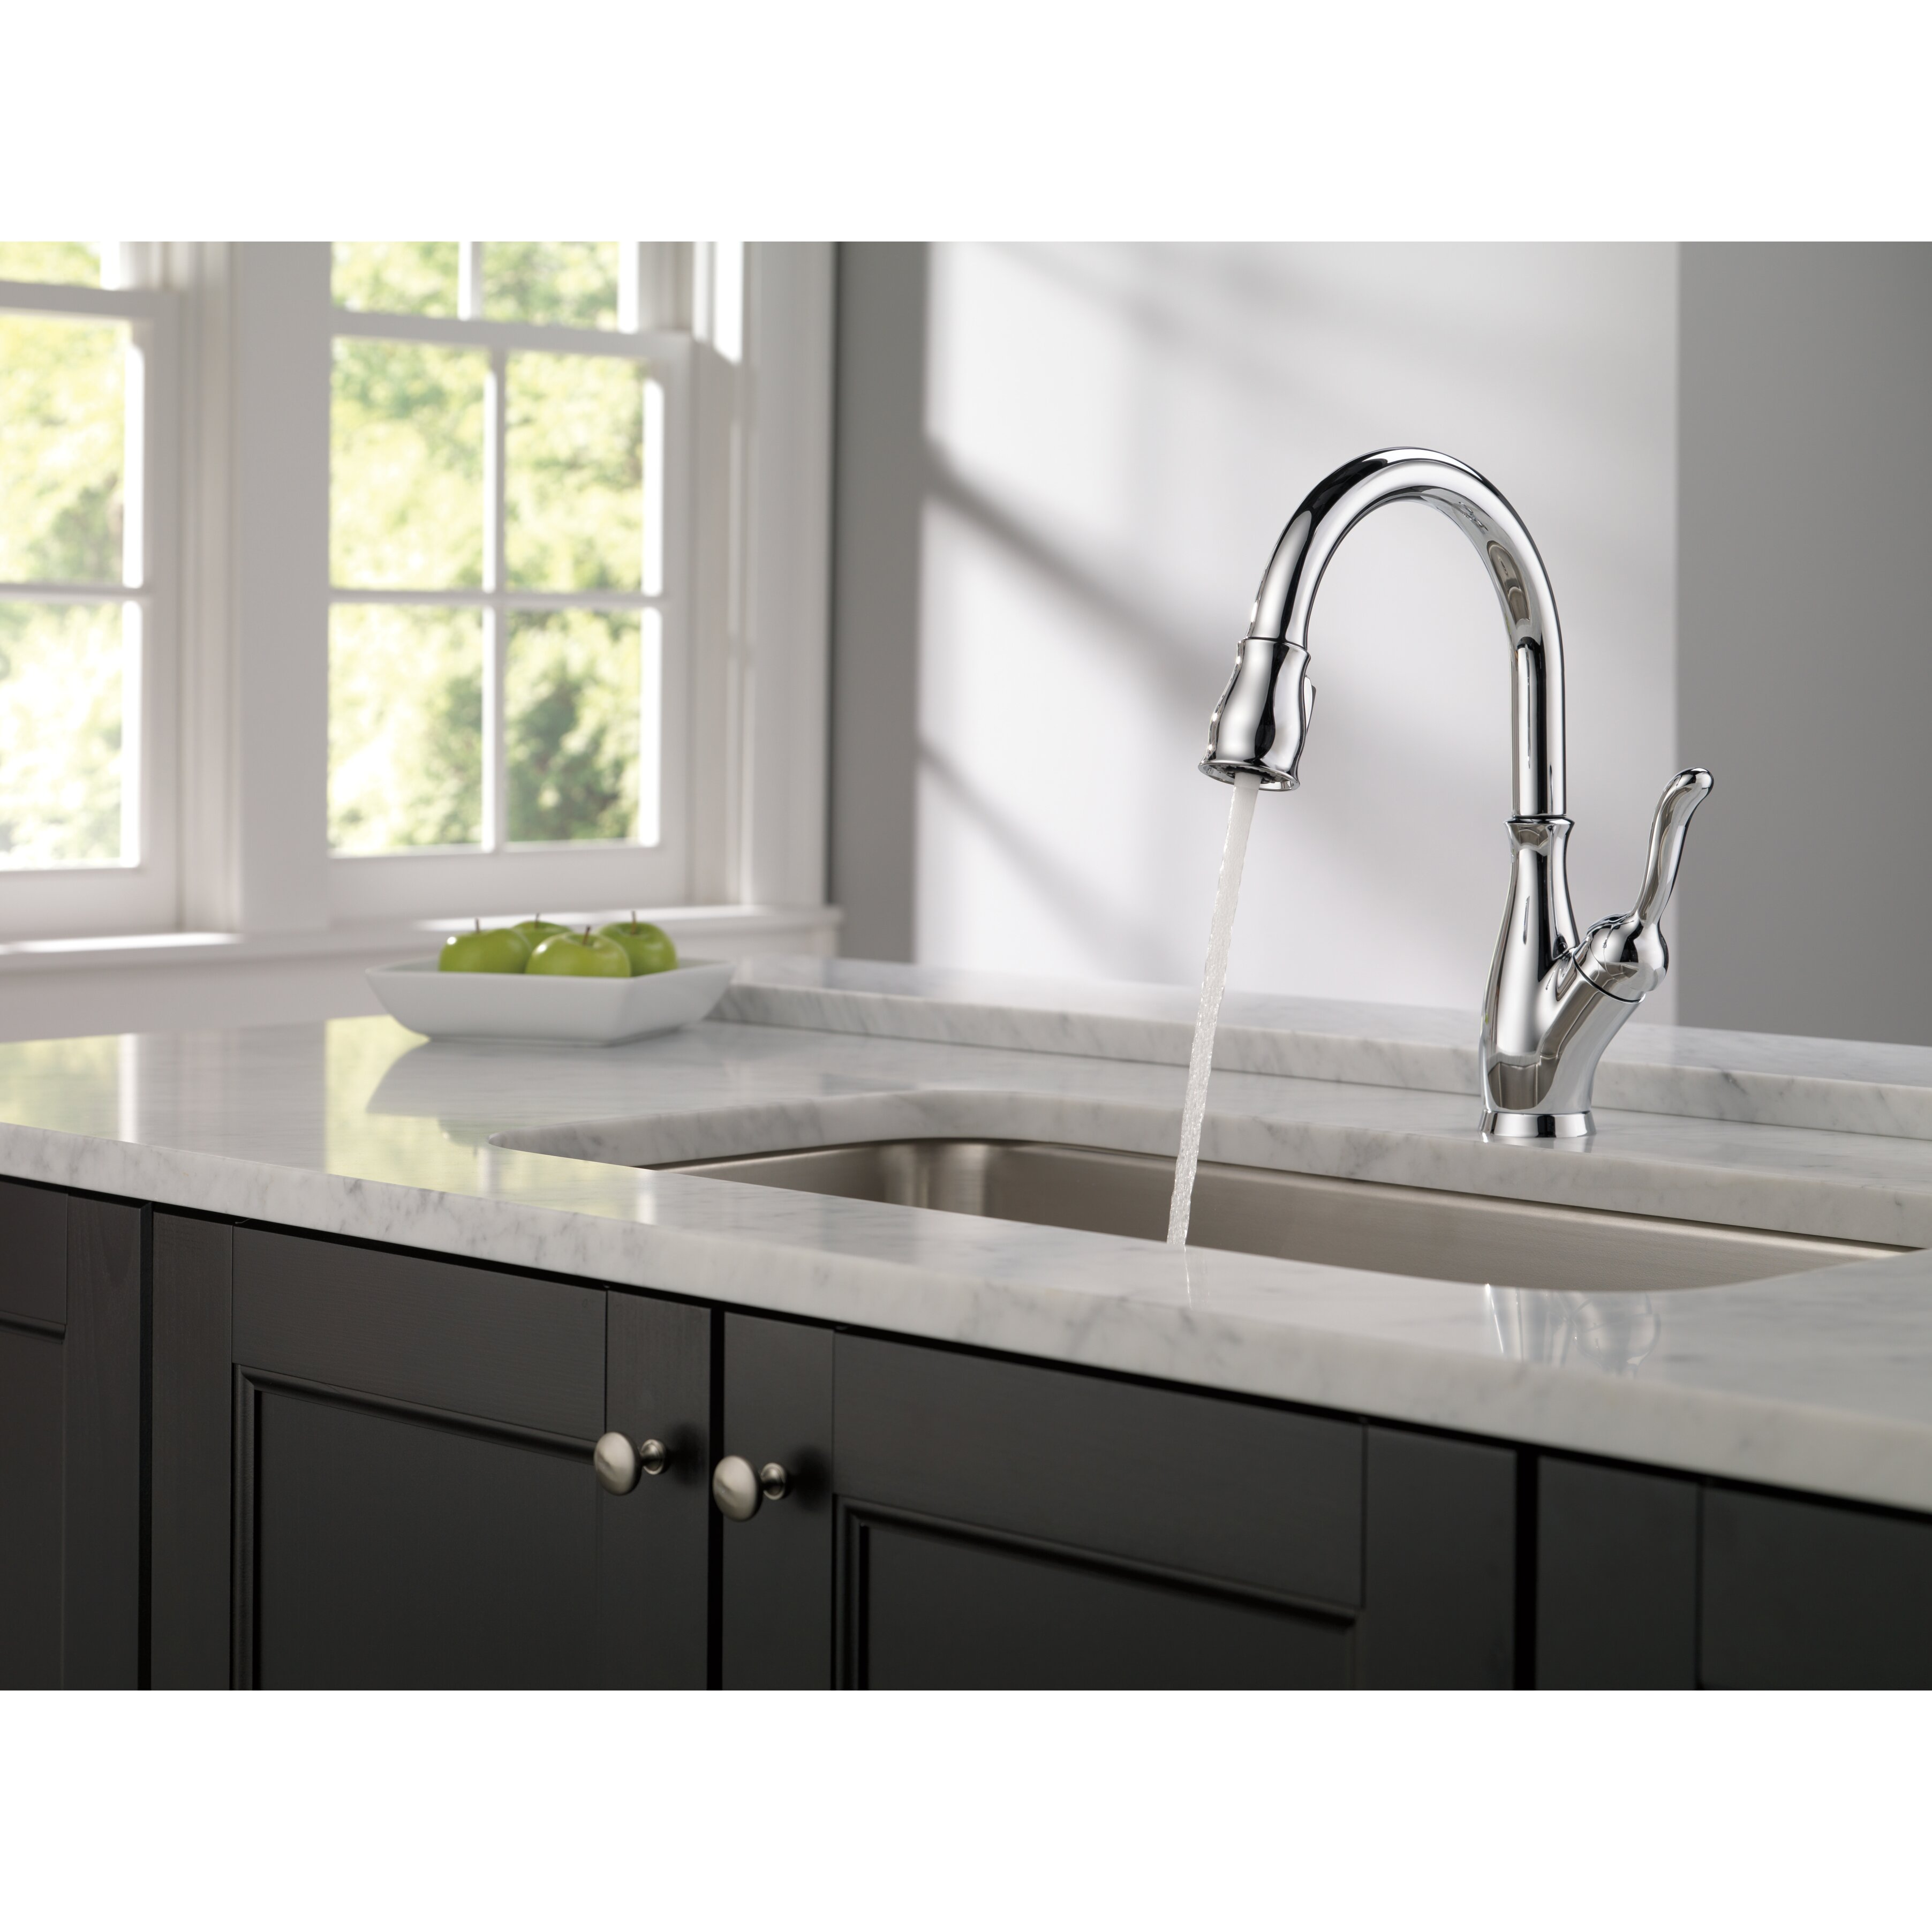 delta faucet foundations standard kitchen faucet with side delta faucets leland bath collection 24 inch towel bar polished